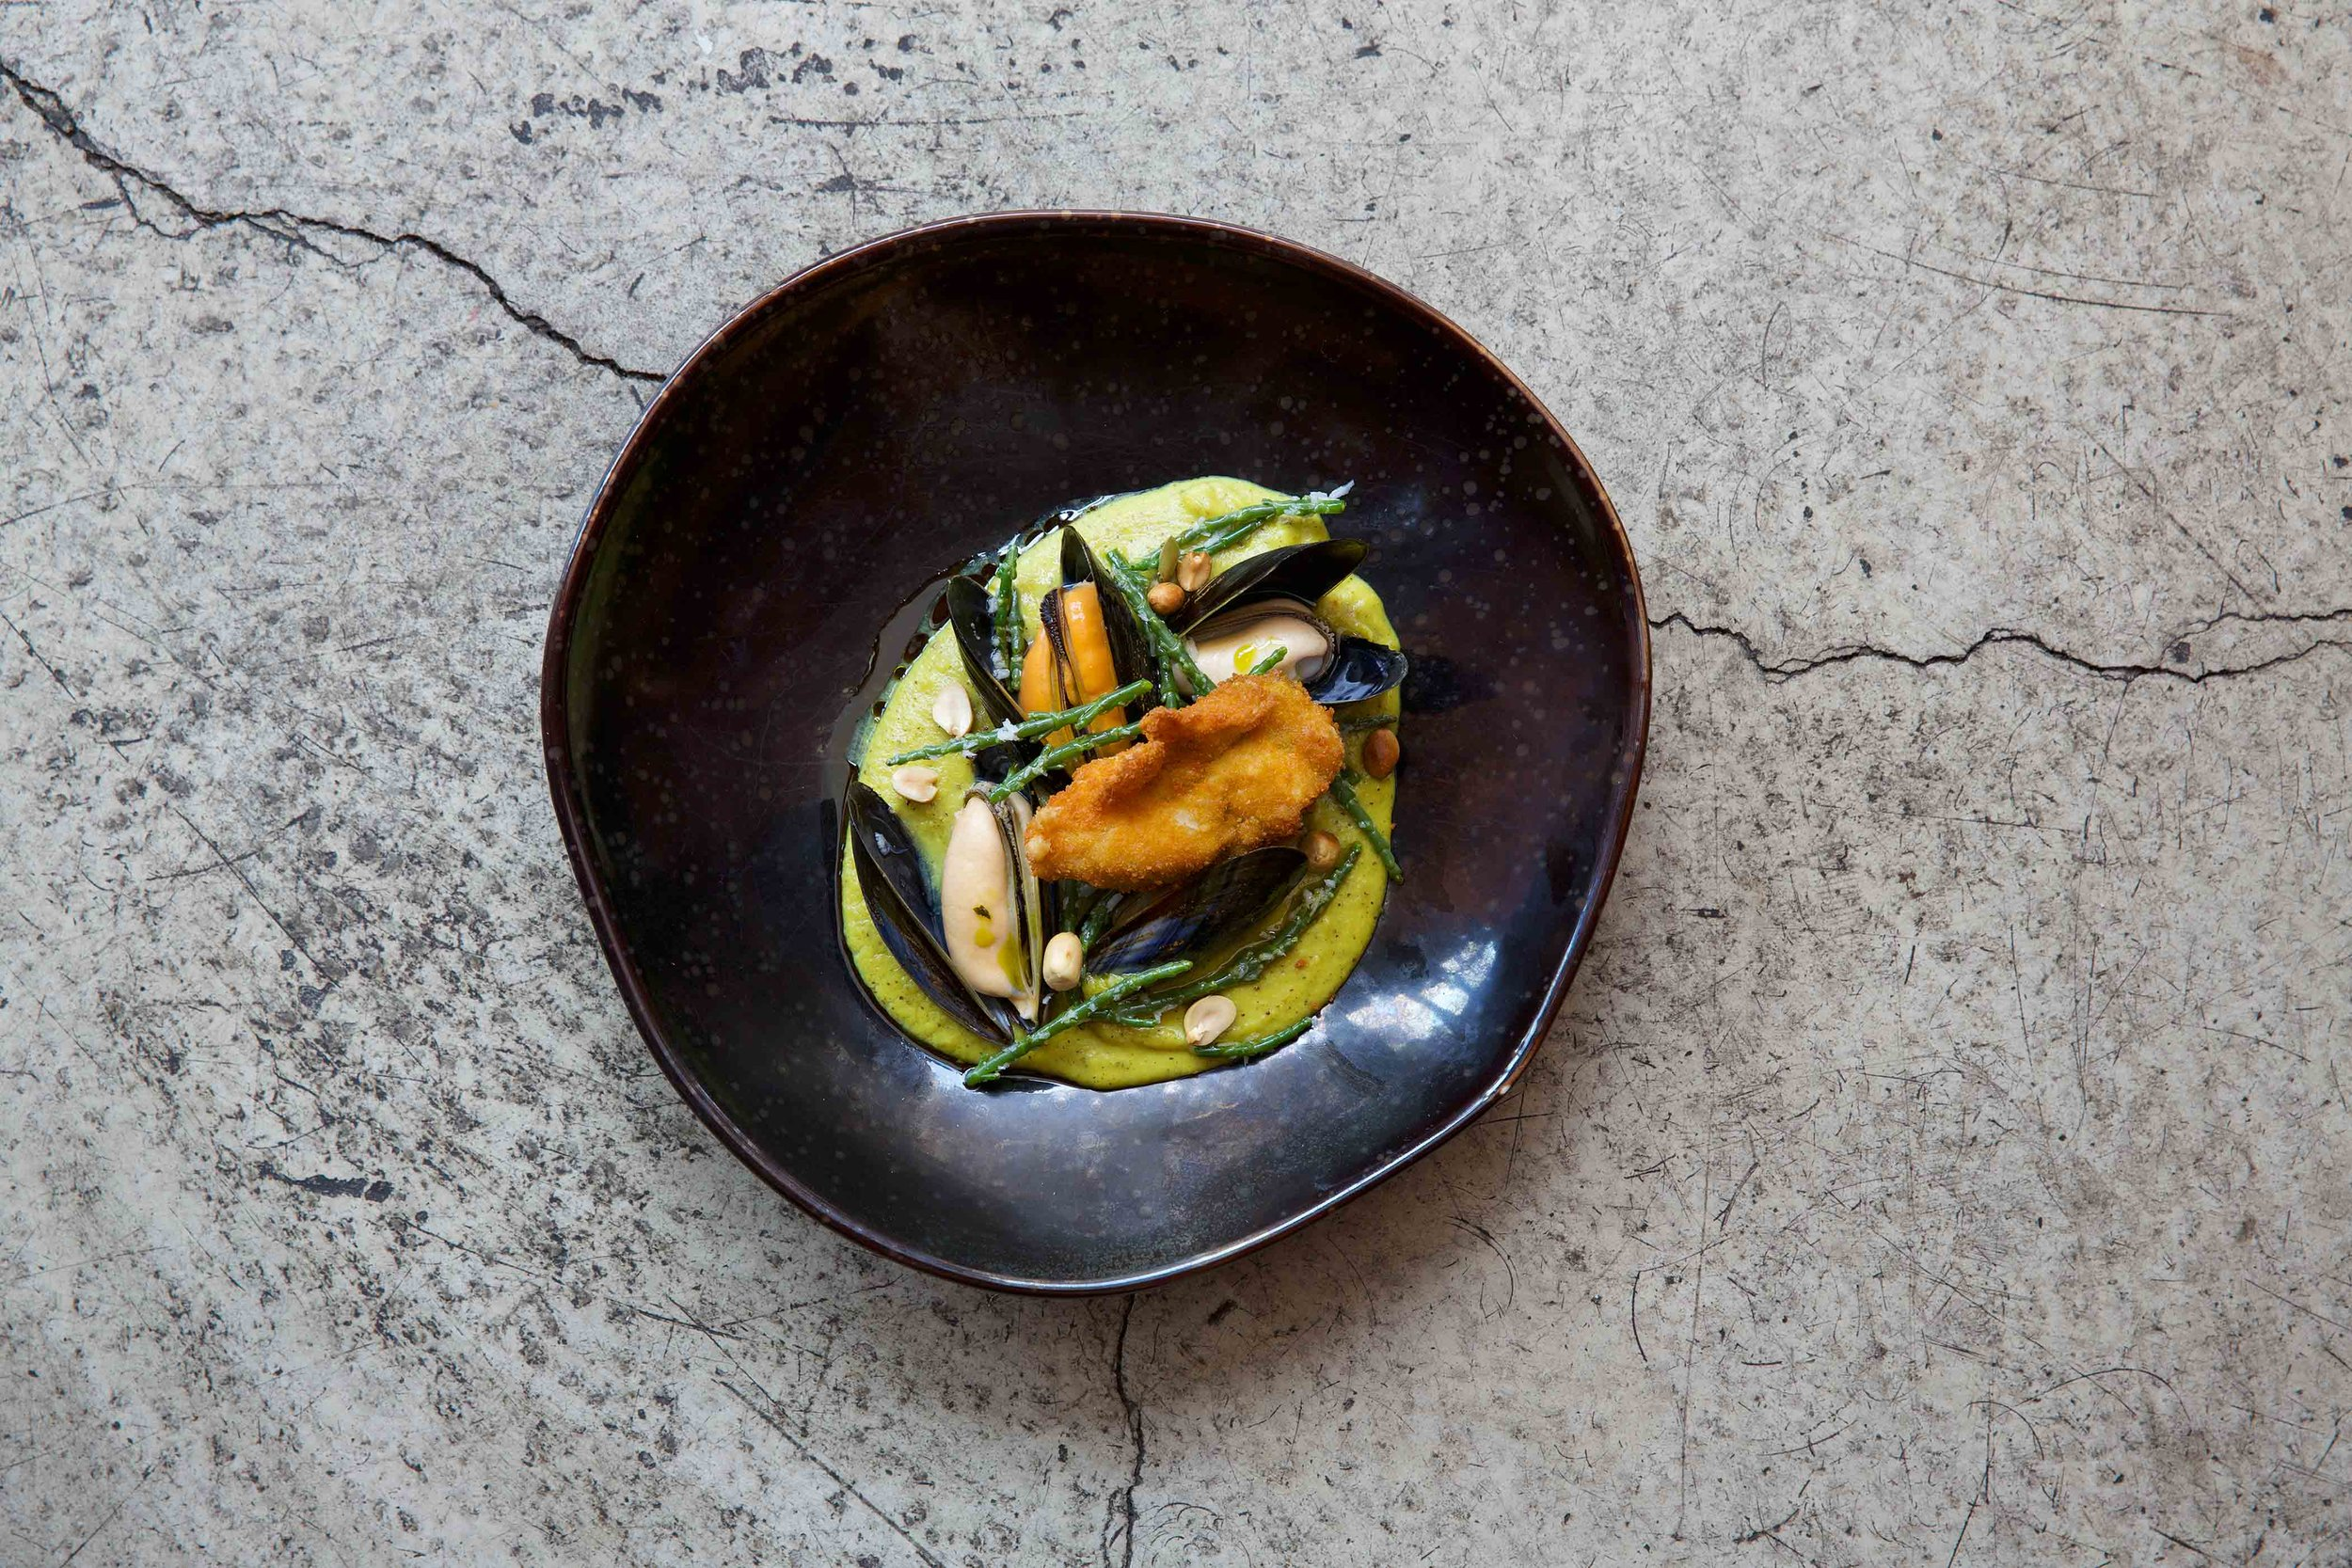 Crispy oyster and mussels in a coconut Keralan sauce